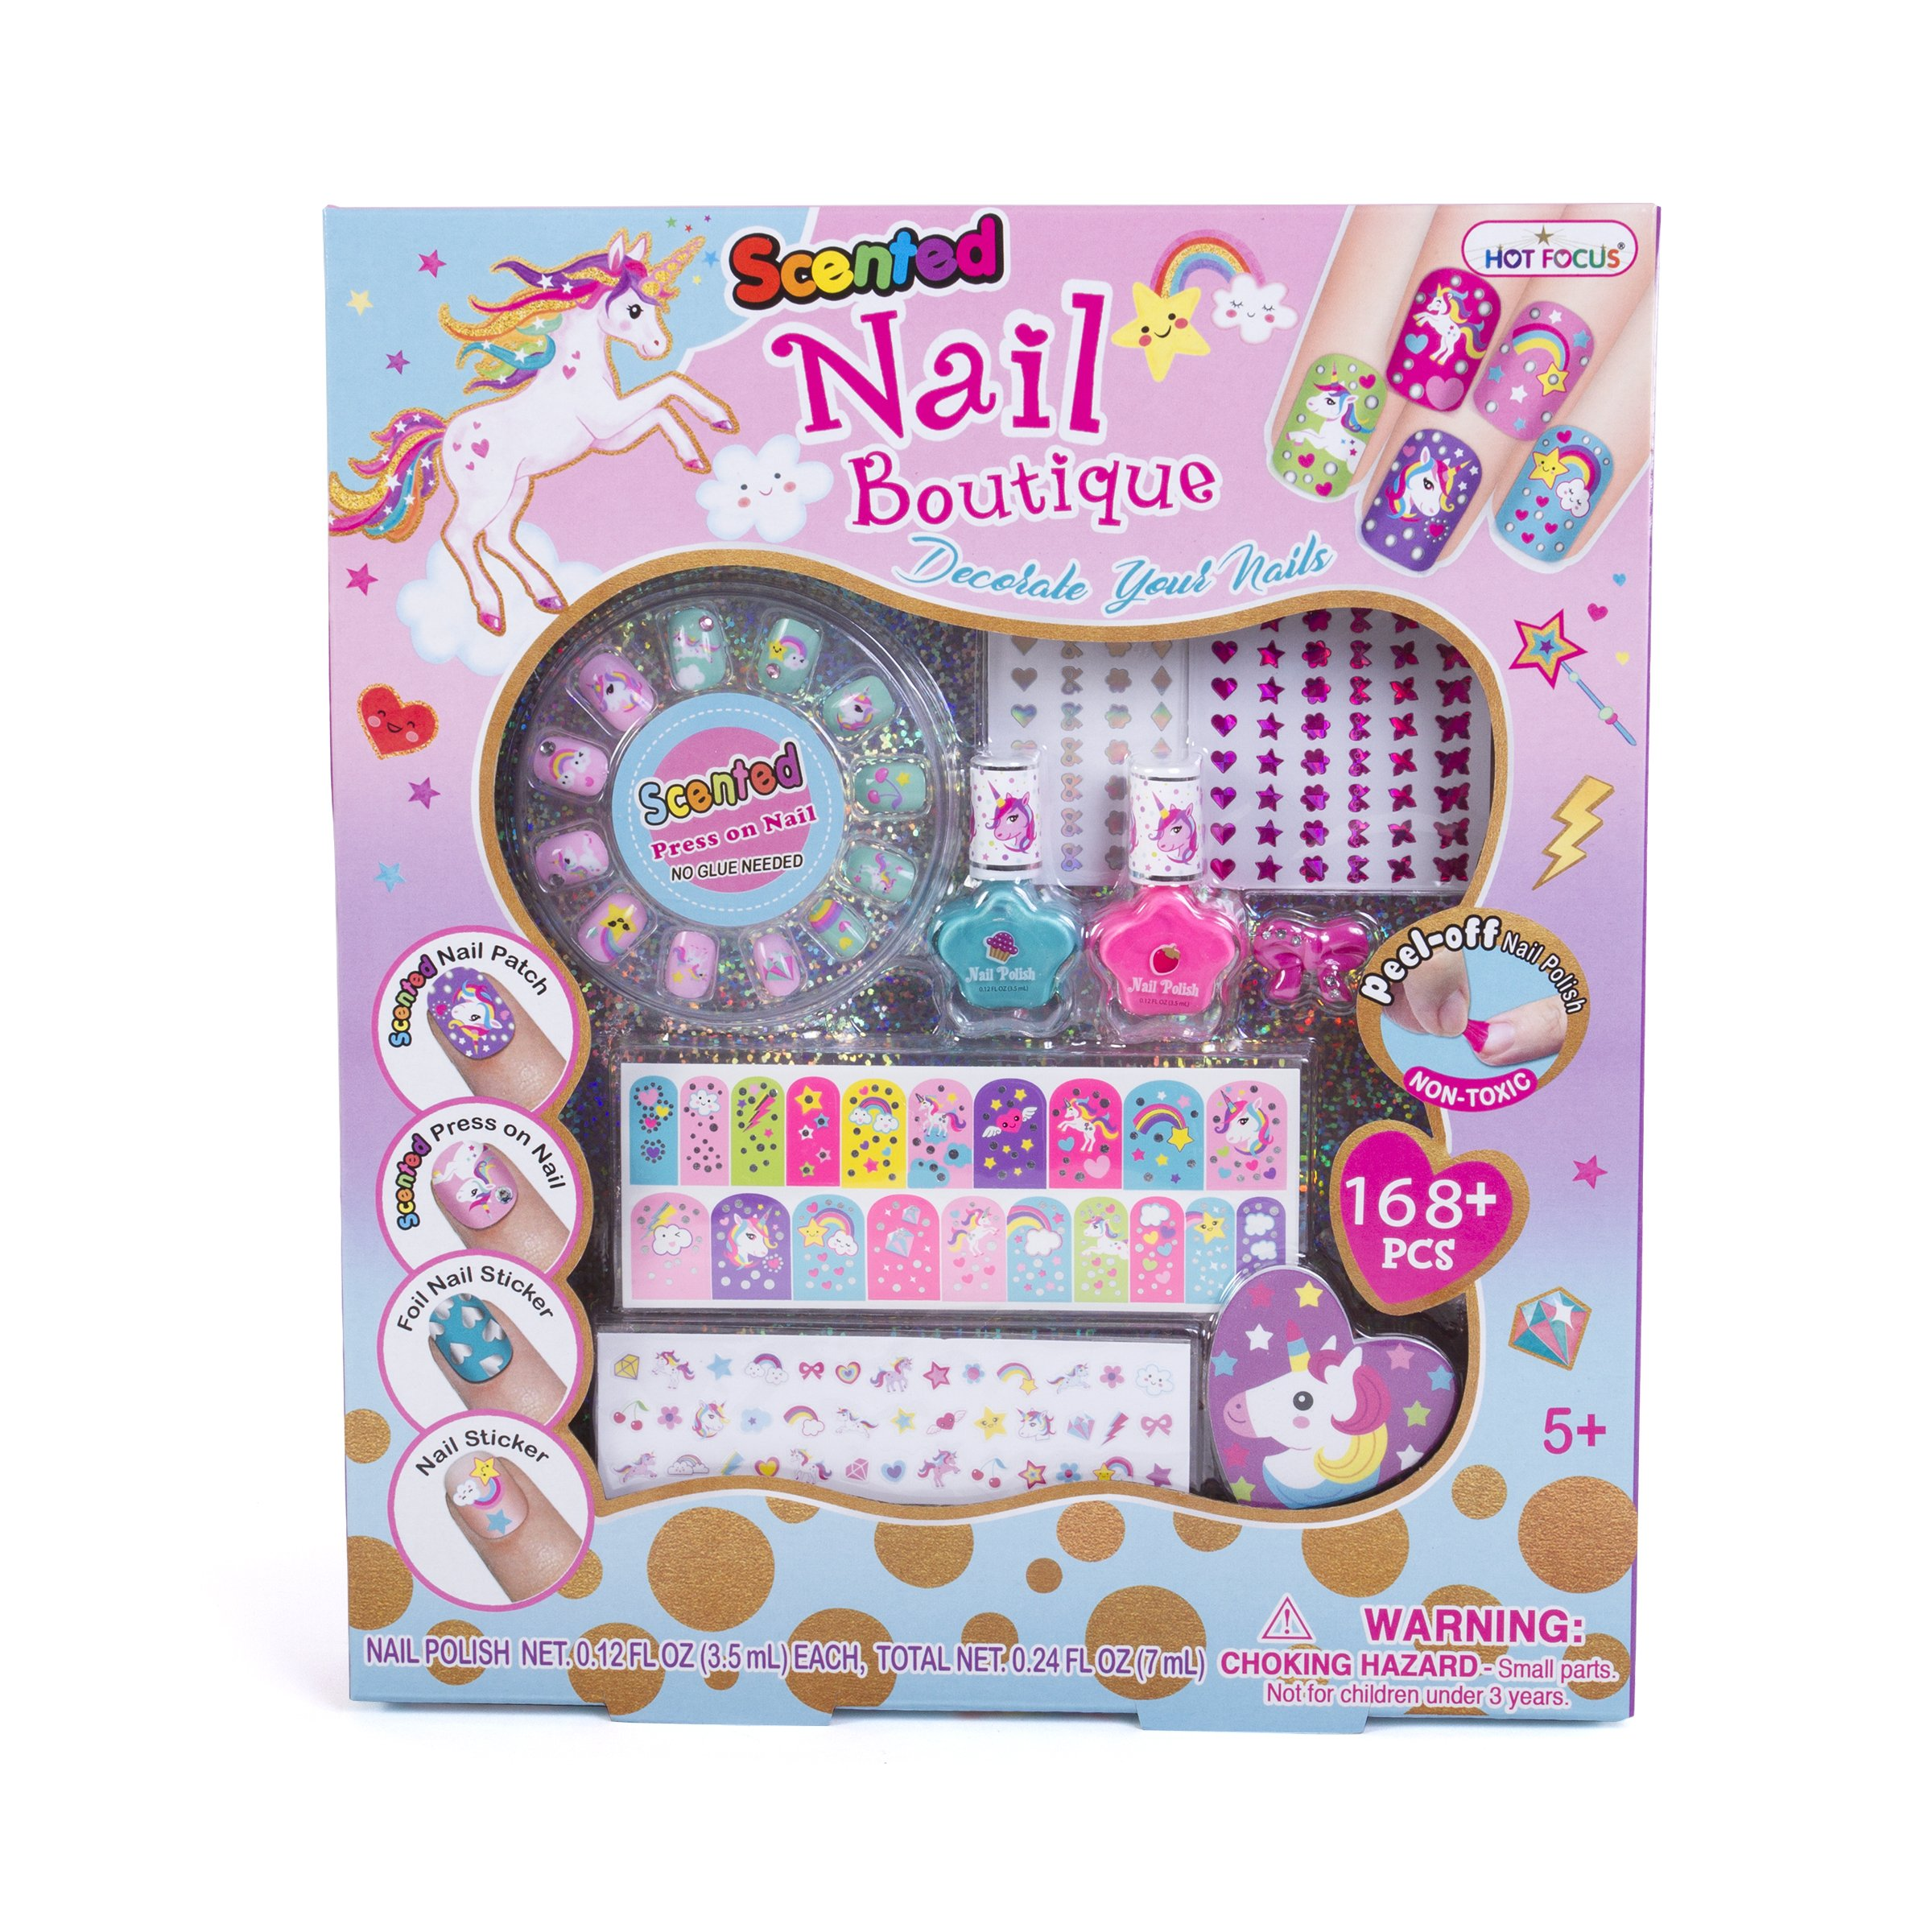 Hot Focus Scented Nail Boutique - 168 Piece Unicorn Nail Art Kit Includes Press on Nails, Nail Patches, Nail Stickers, Nail Polishes, Nail File and Ring - Non-Toxic Water Based Peel Off Nail Polish by Hot Focus